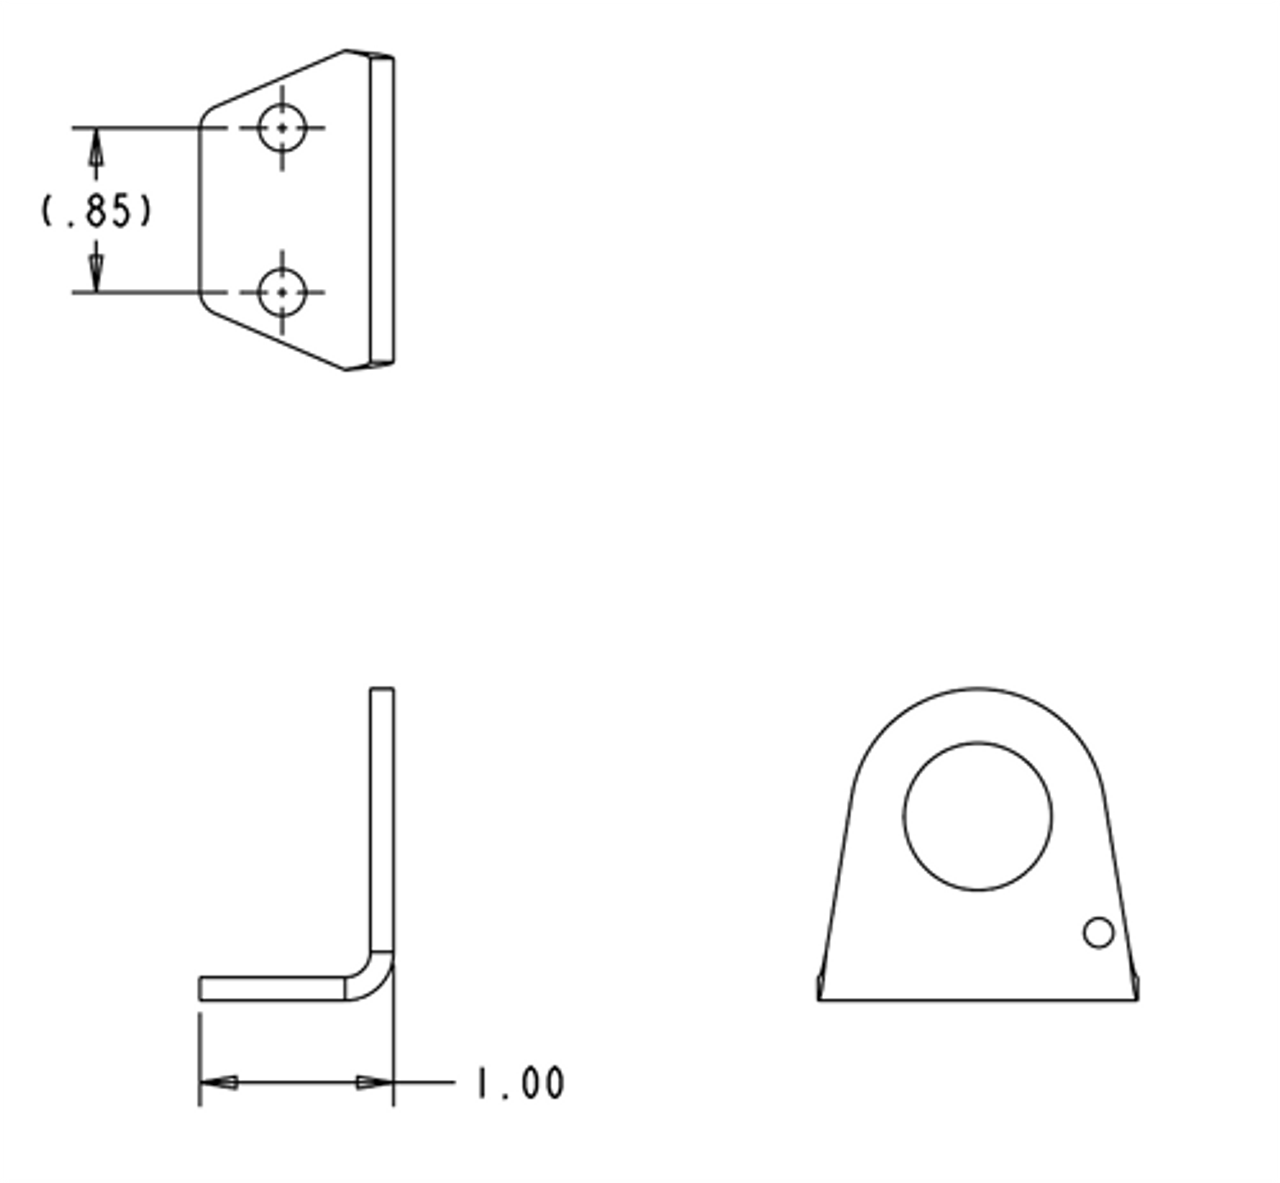 Air Coupler Bracket- Angled (ACB-2) dimensions